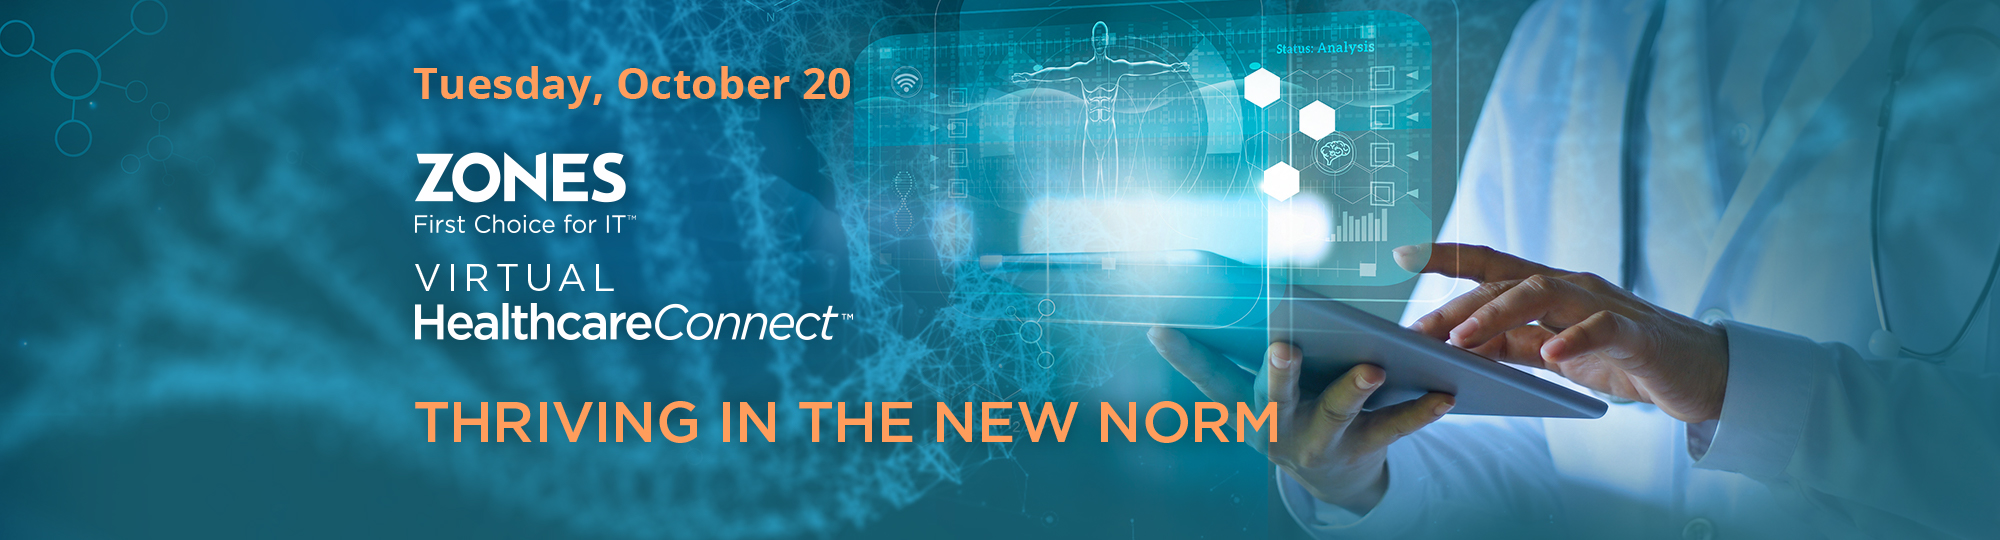 Zones Healthcare Connect Virtual Conference on Oct 20, 2020: The New Norm